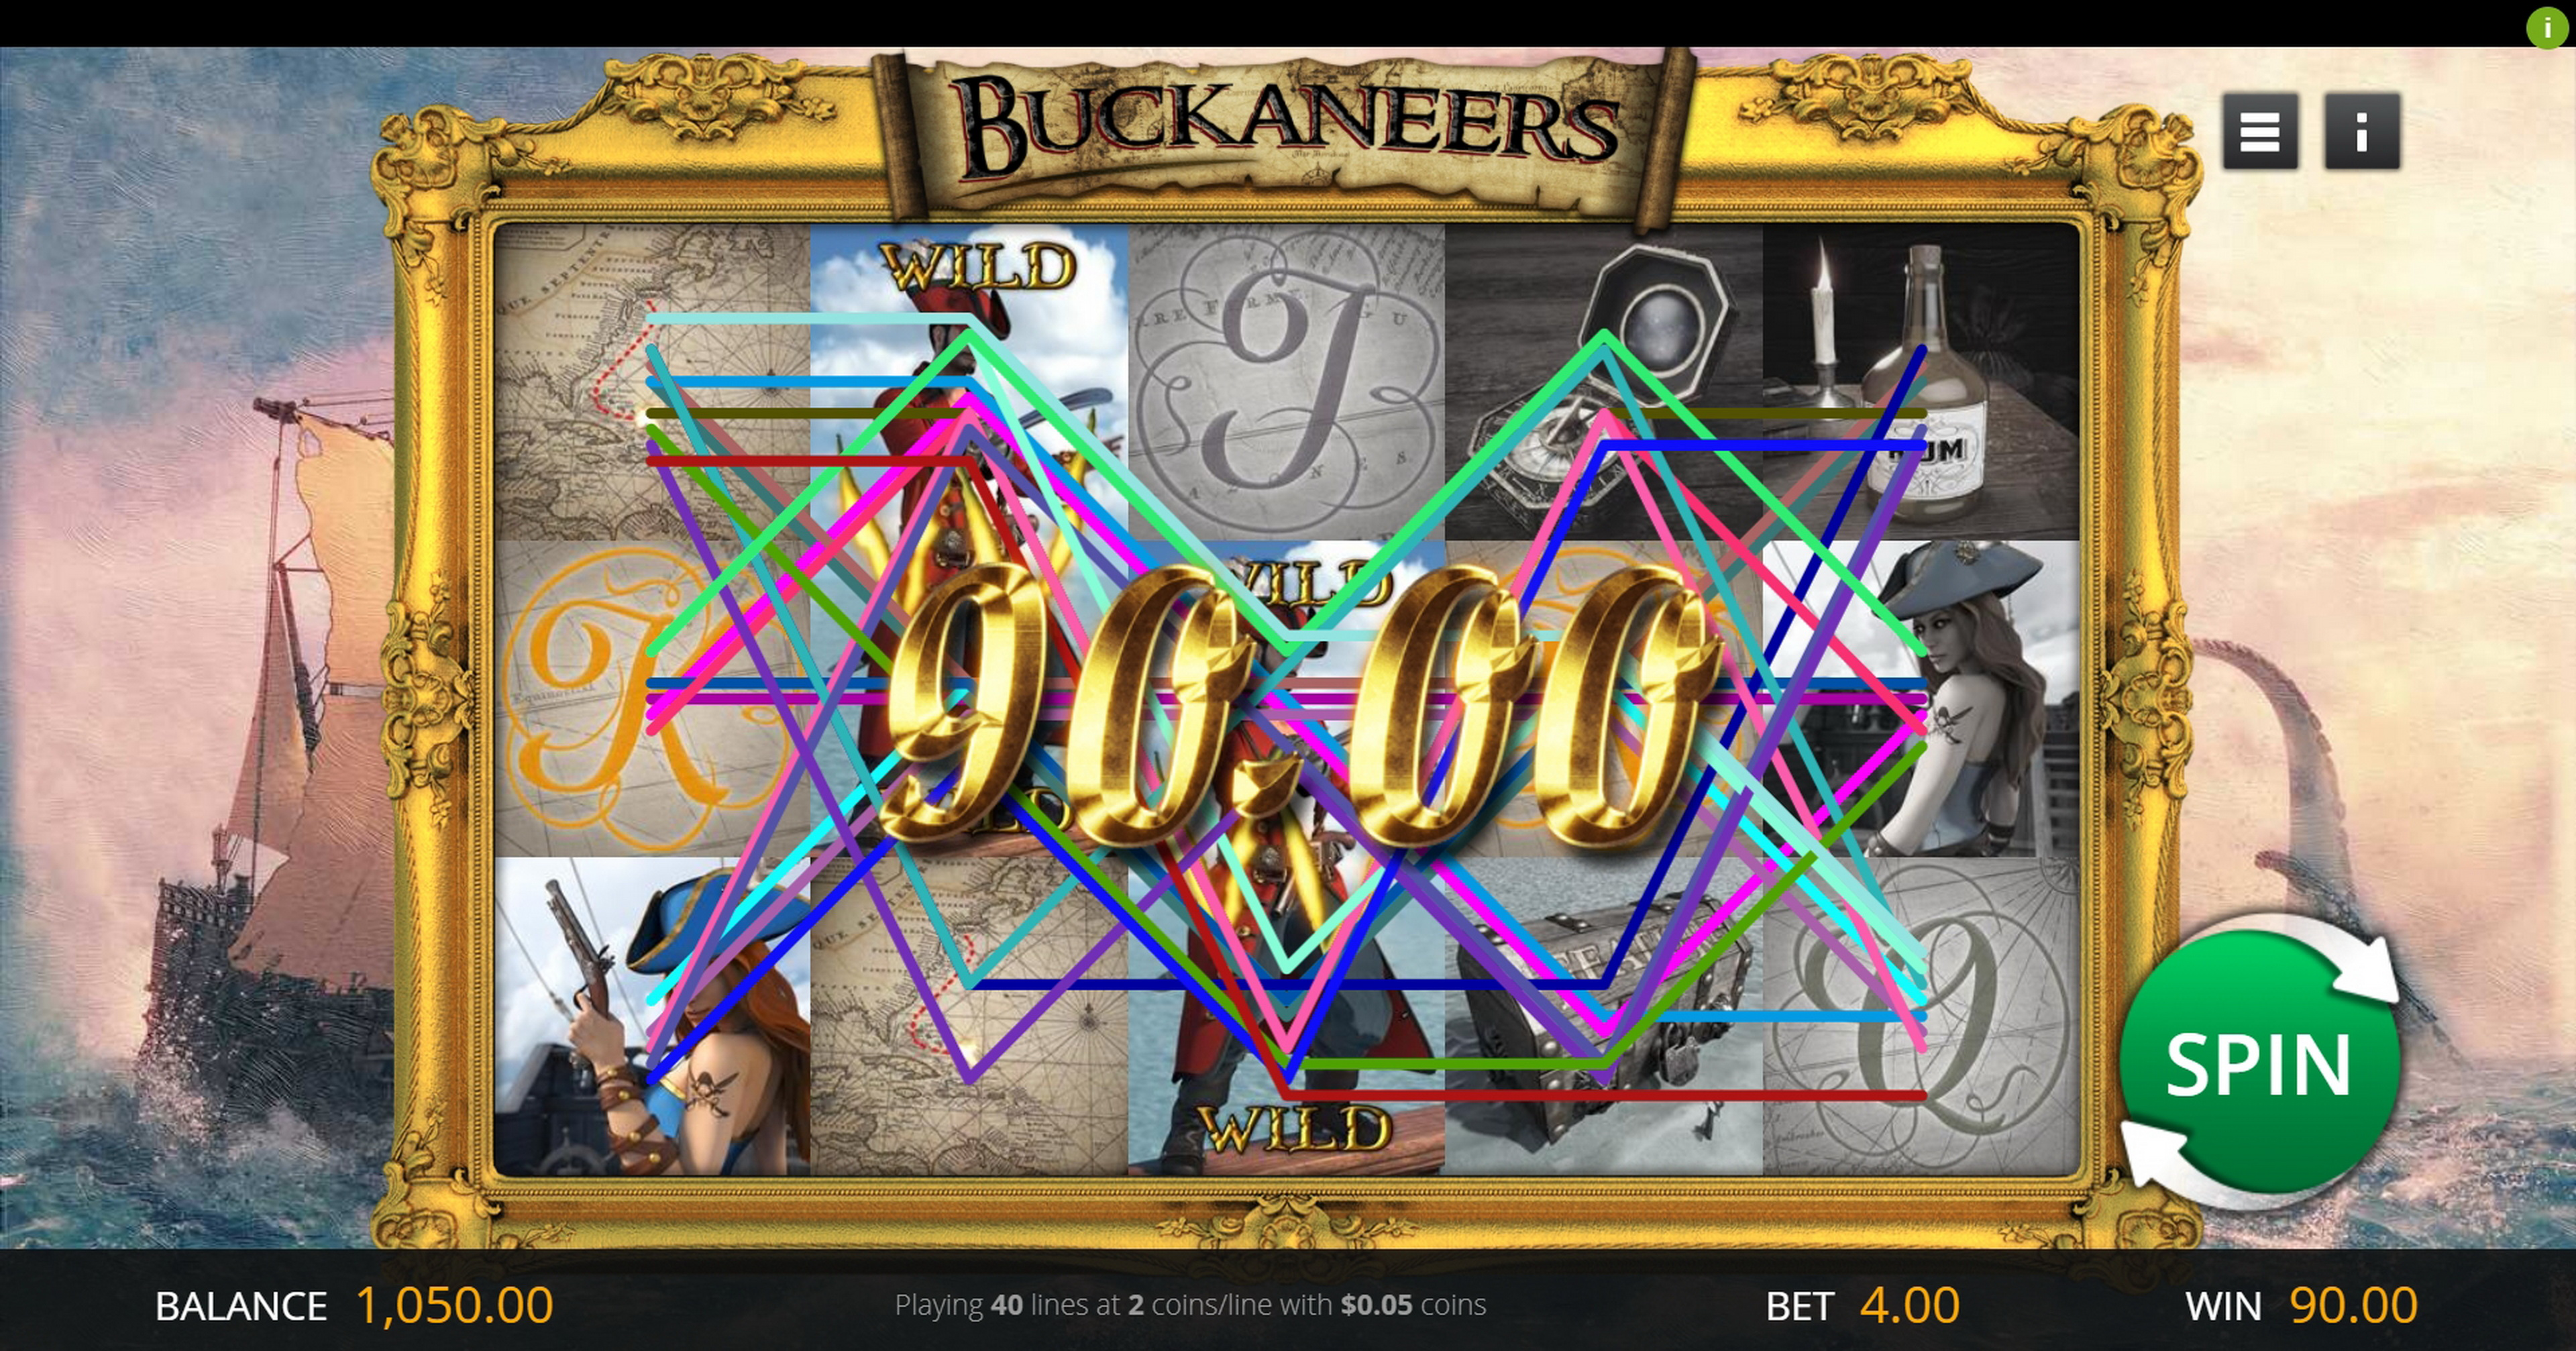 Win Money in Buckaneers Free Slot Game by Genii